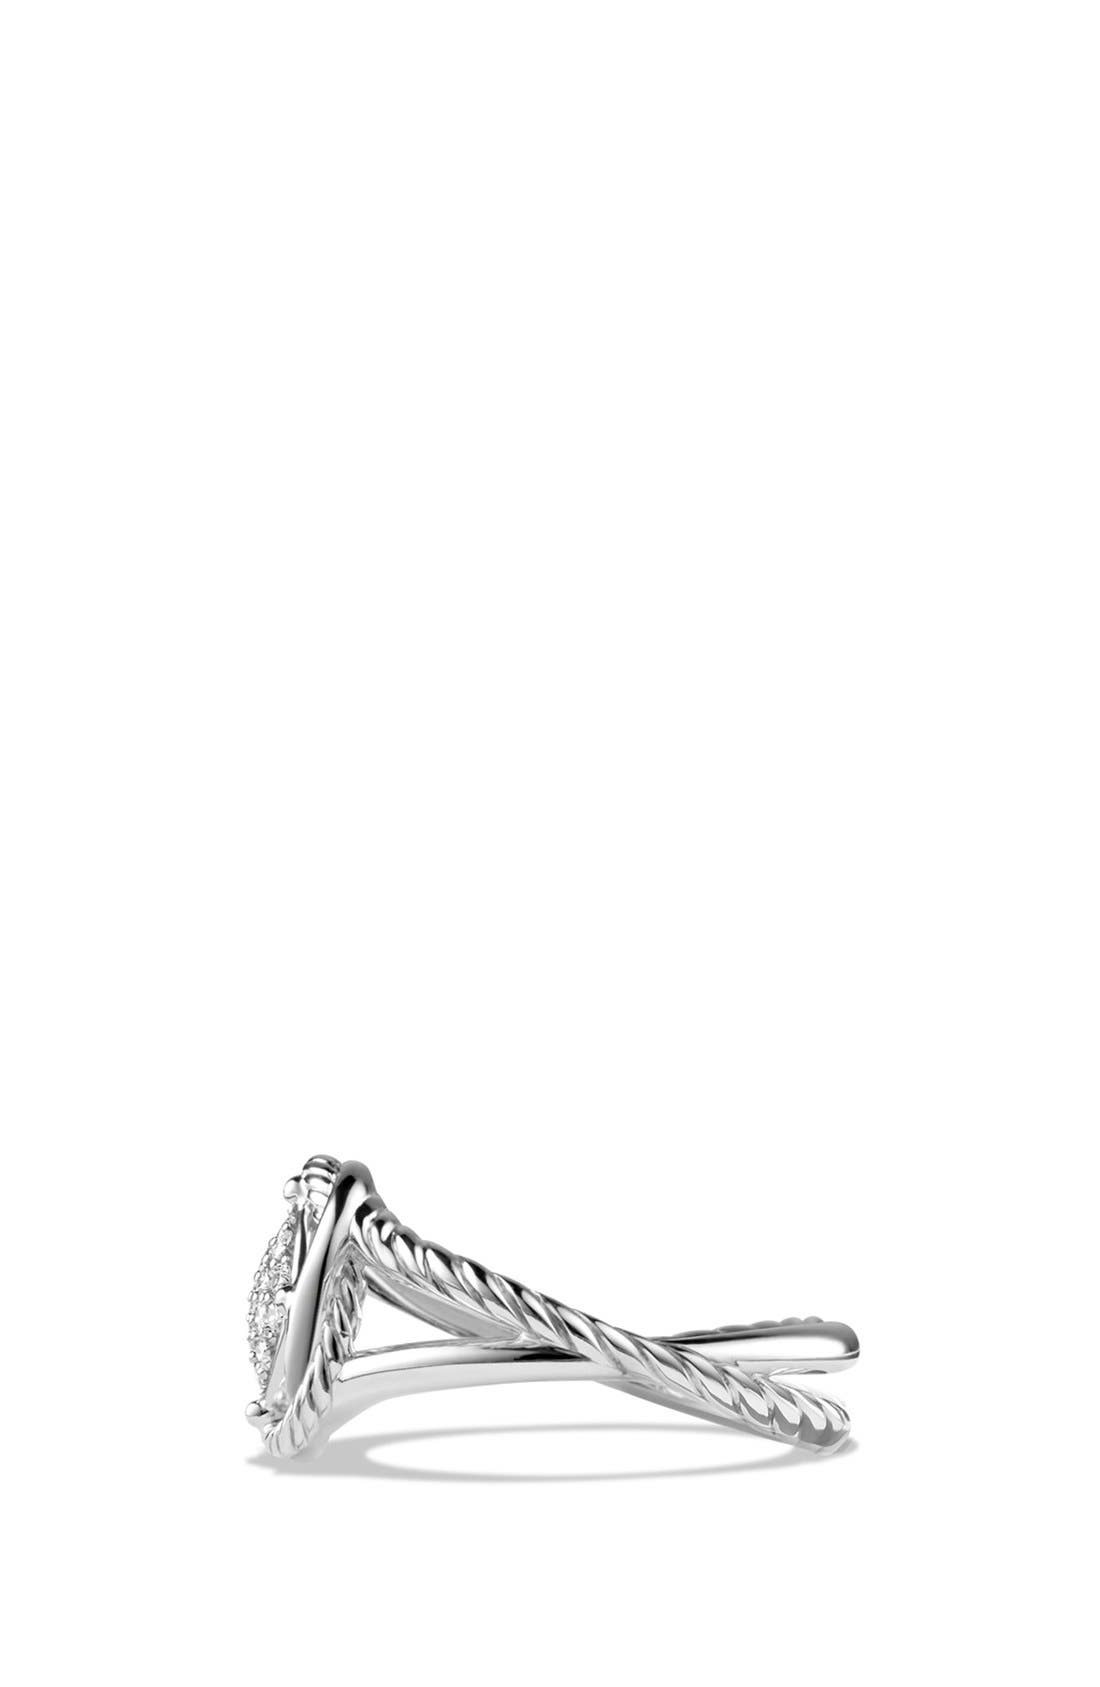 'Infinity' Ring with Diamonds,                             Alternate thumbnail 7, color,                             DIAMOND